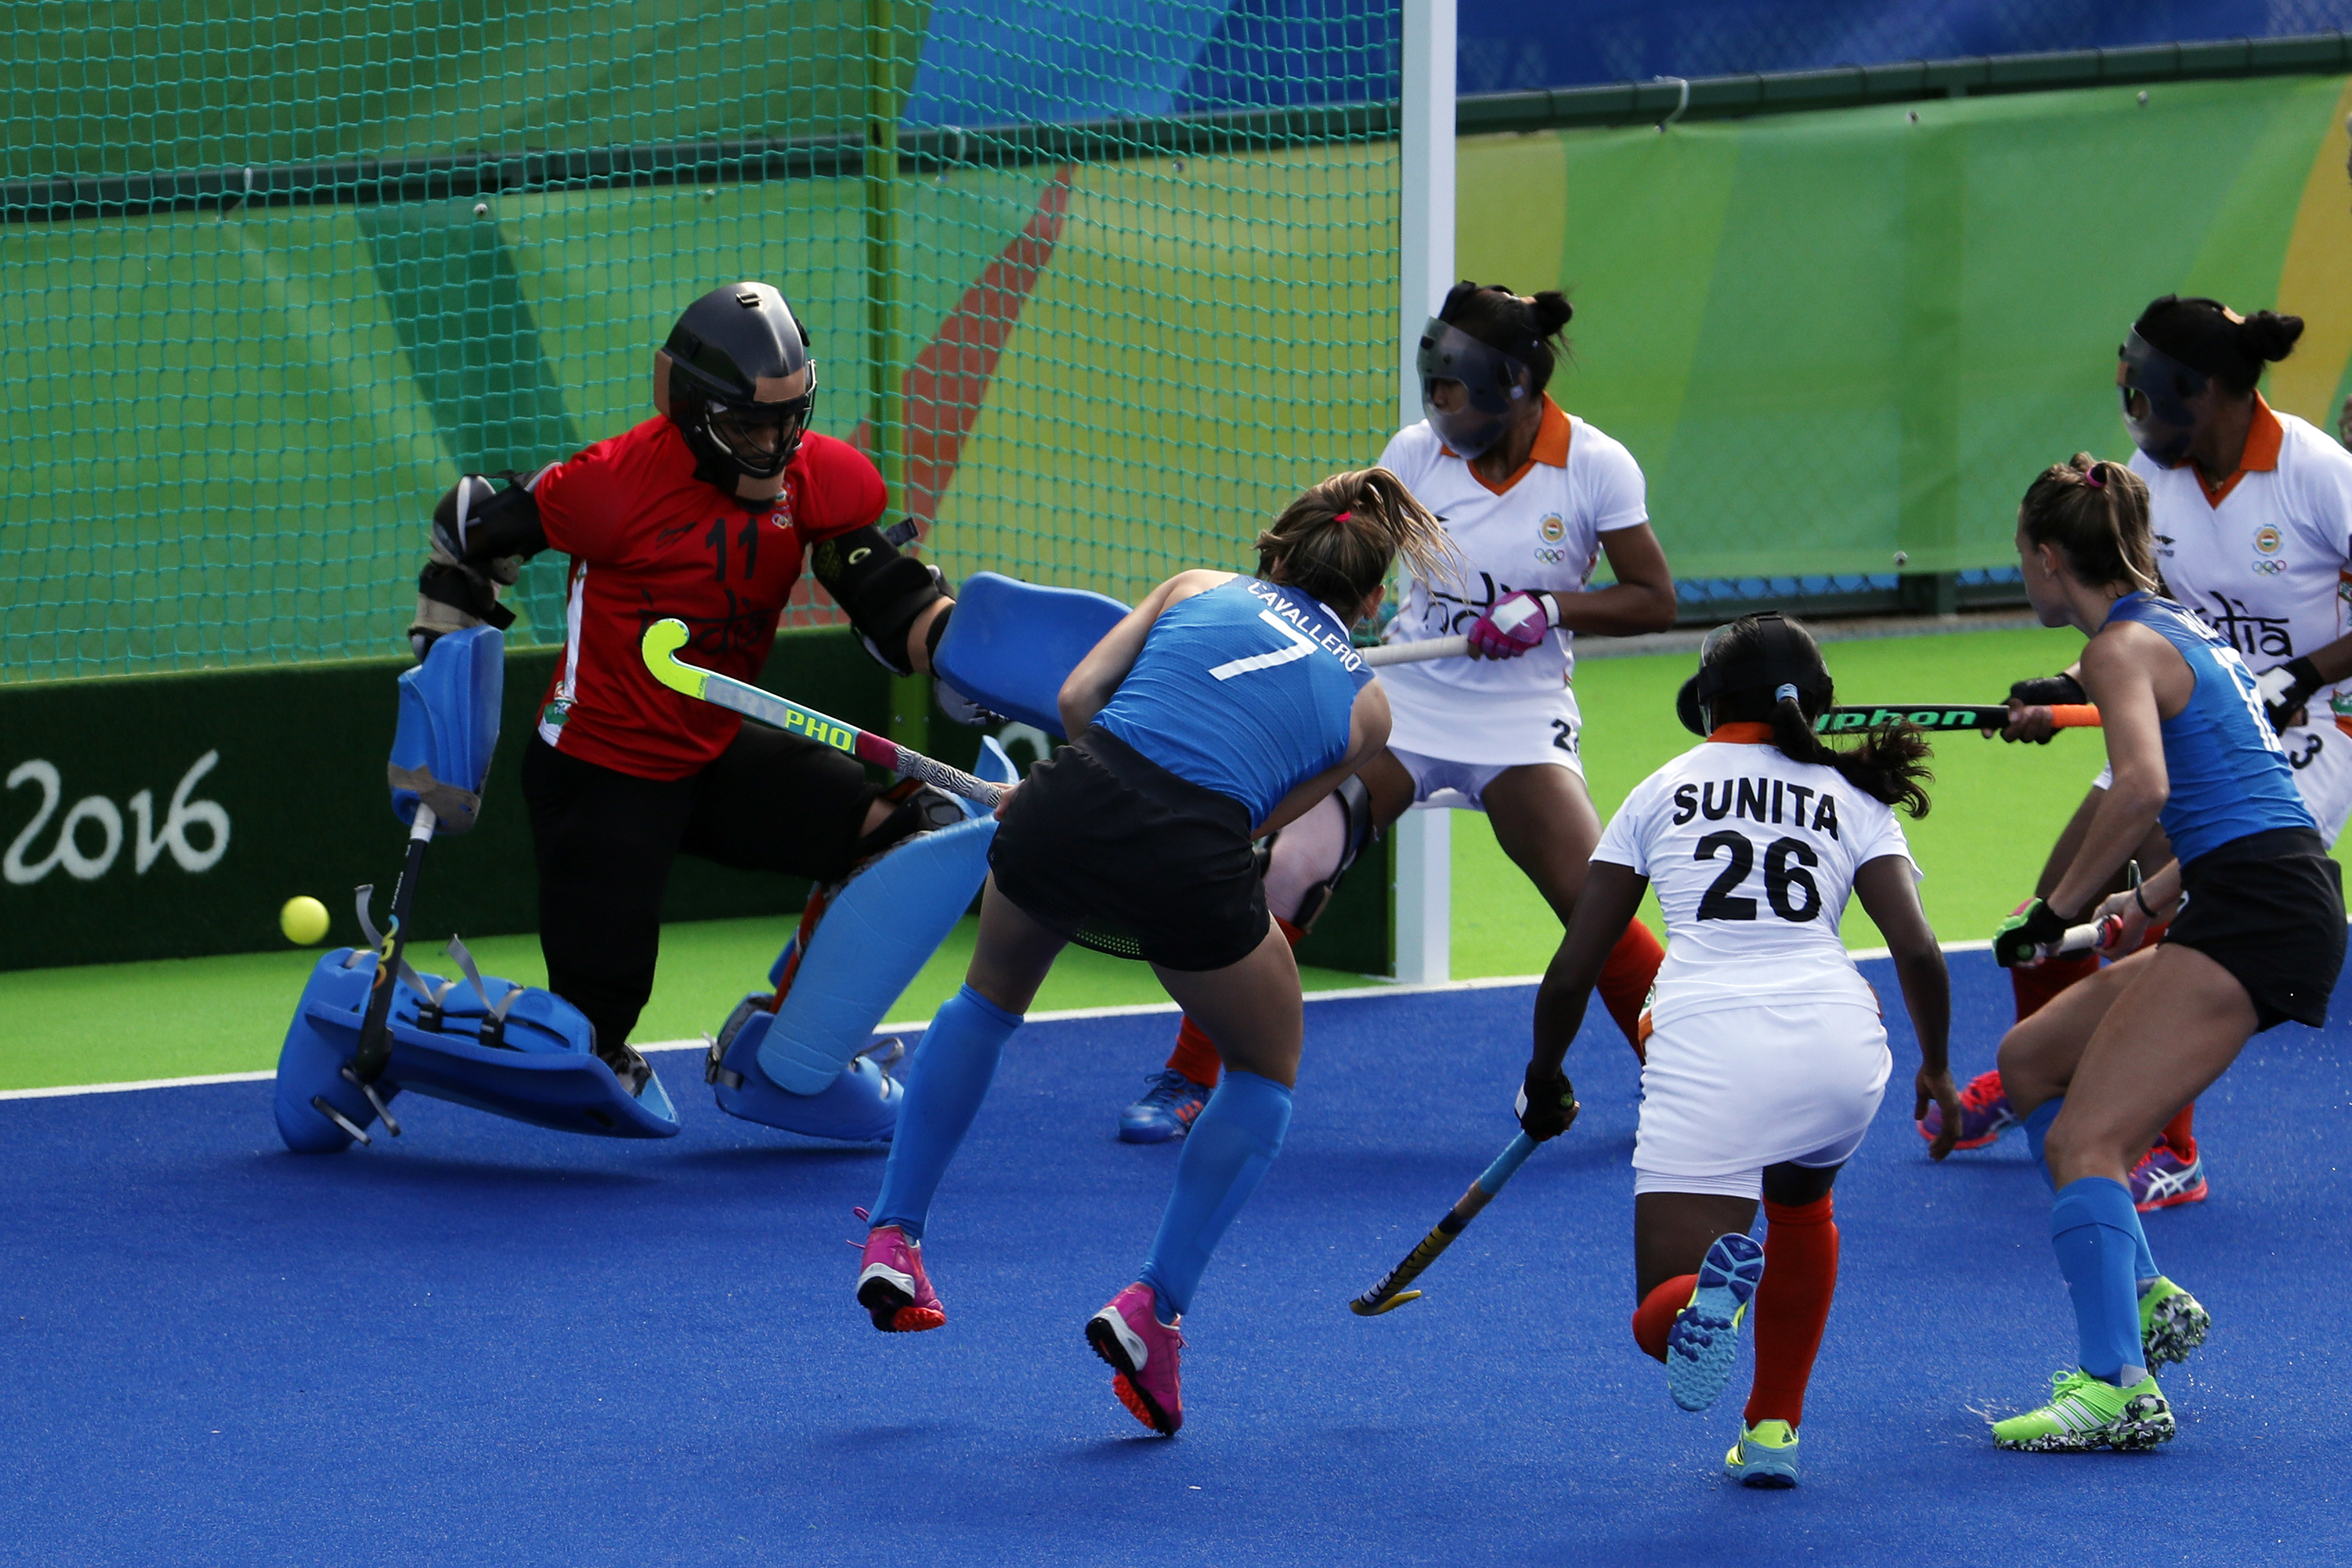 Argentina's Martina Cavallero shoots to score against India during a women's field hockey match at the 2016 Summer Olympics in Rio de Janeiro, Brazil, Saturday, Aug. 13, 2016. (AP Photo/Dario Lopez-Mills)